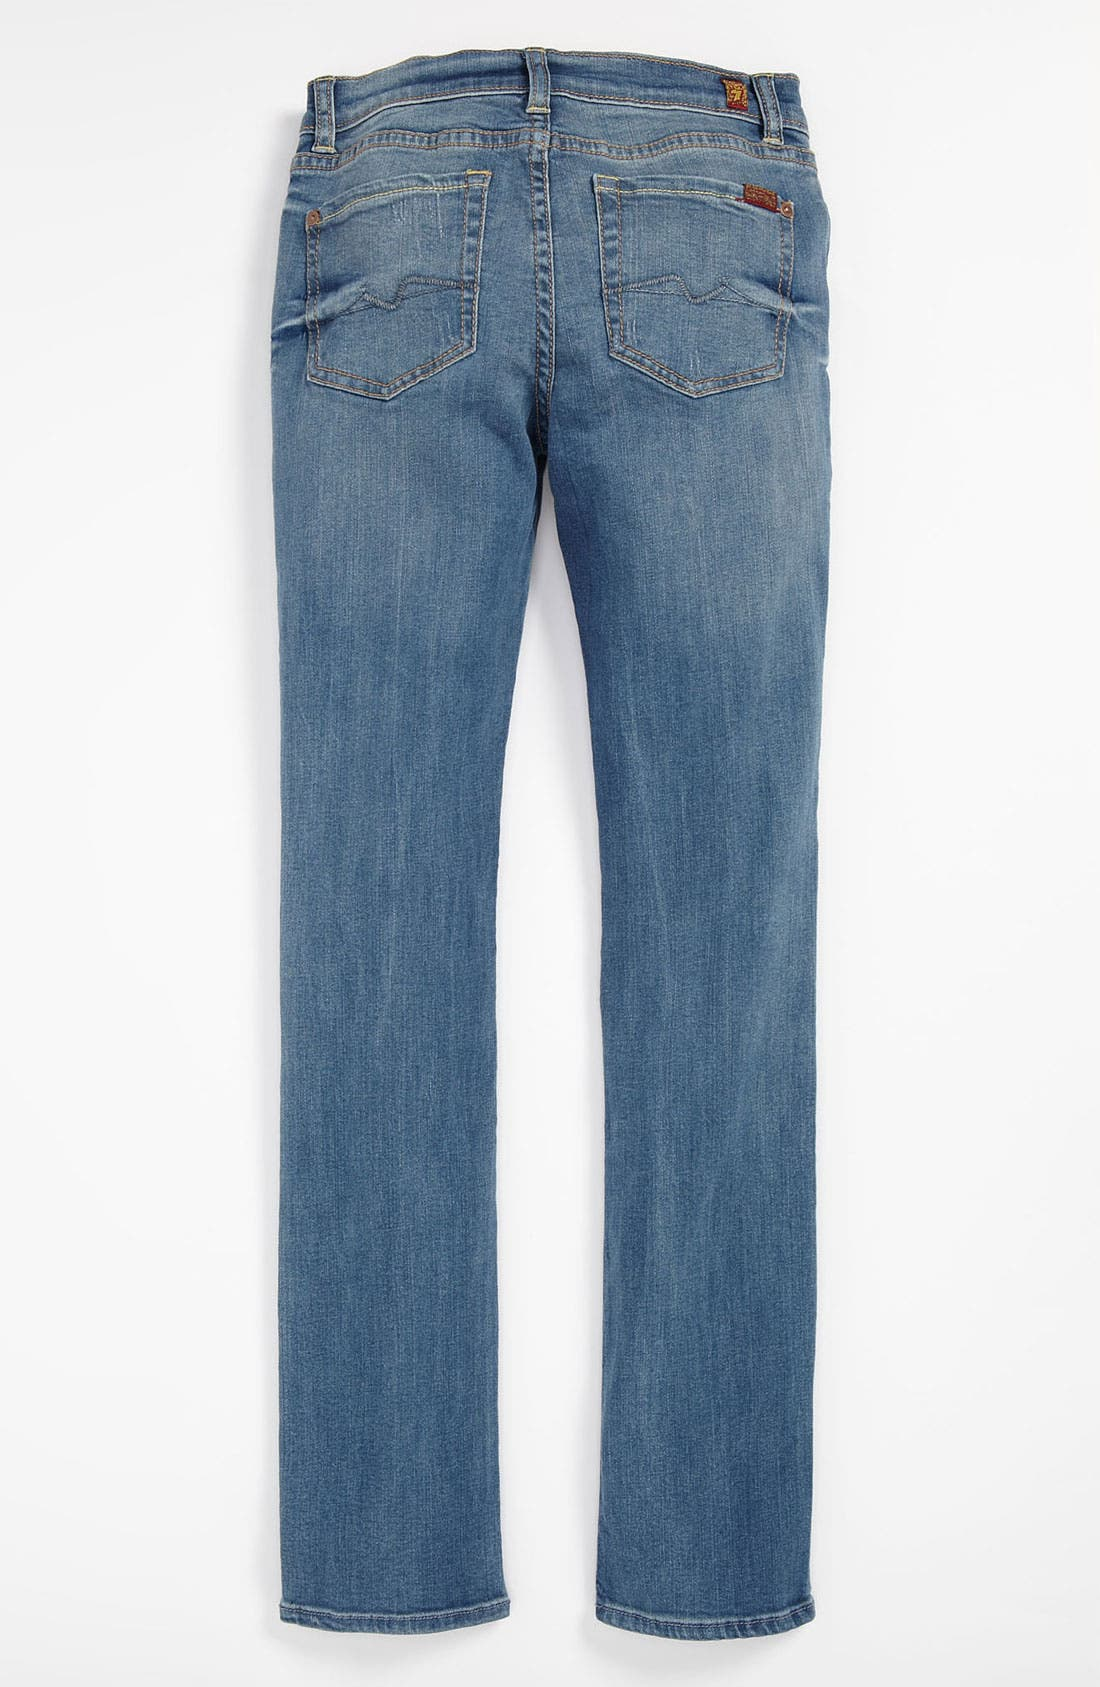 Alternate Image 1 Selected - 7 For All Mankind® Distressed Straight Leg Jeans (Big Girls)